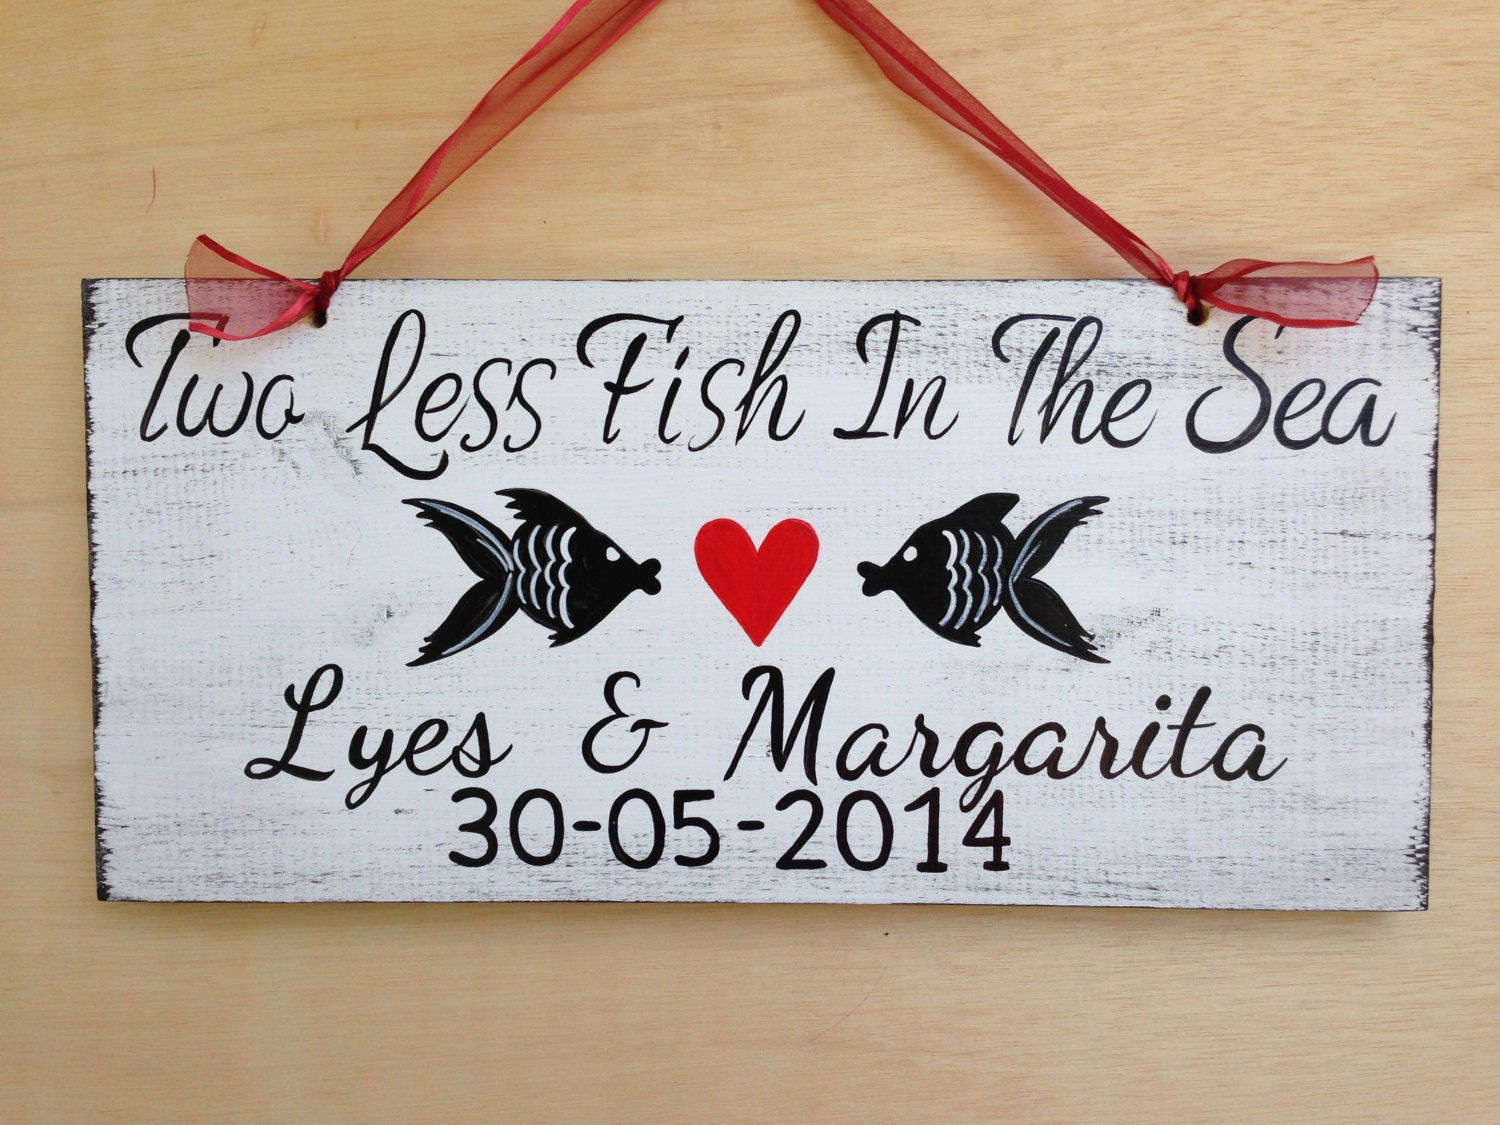 Two less fish in the sea wedding name sign beach wedding for Www plenty of fish sign in